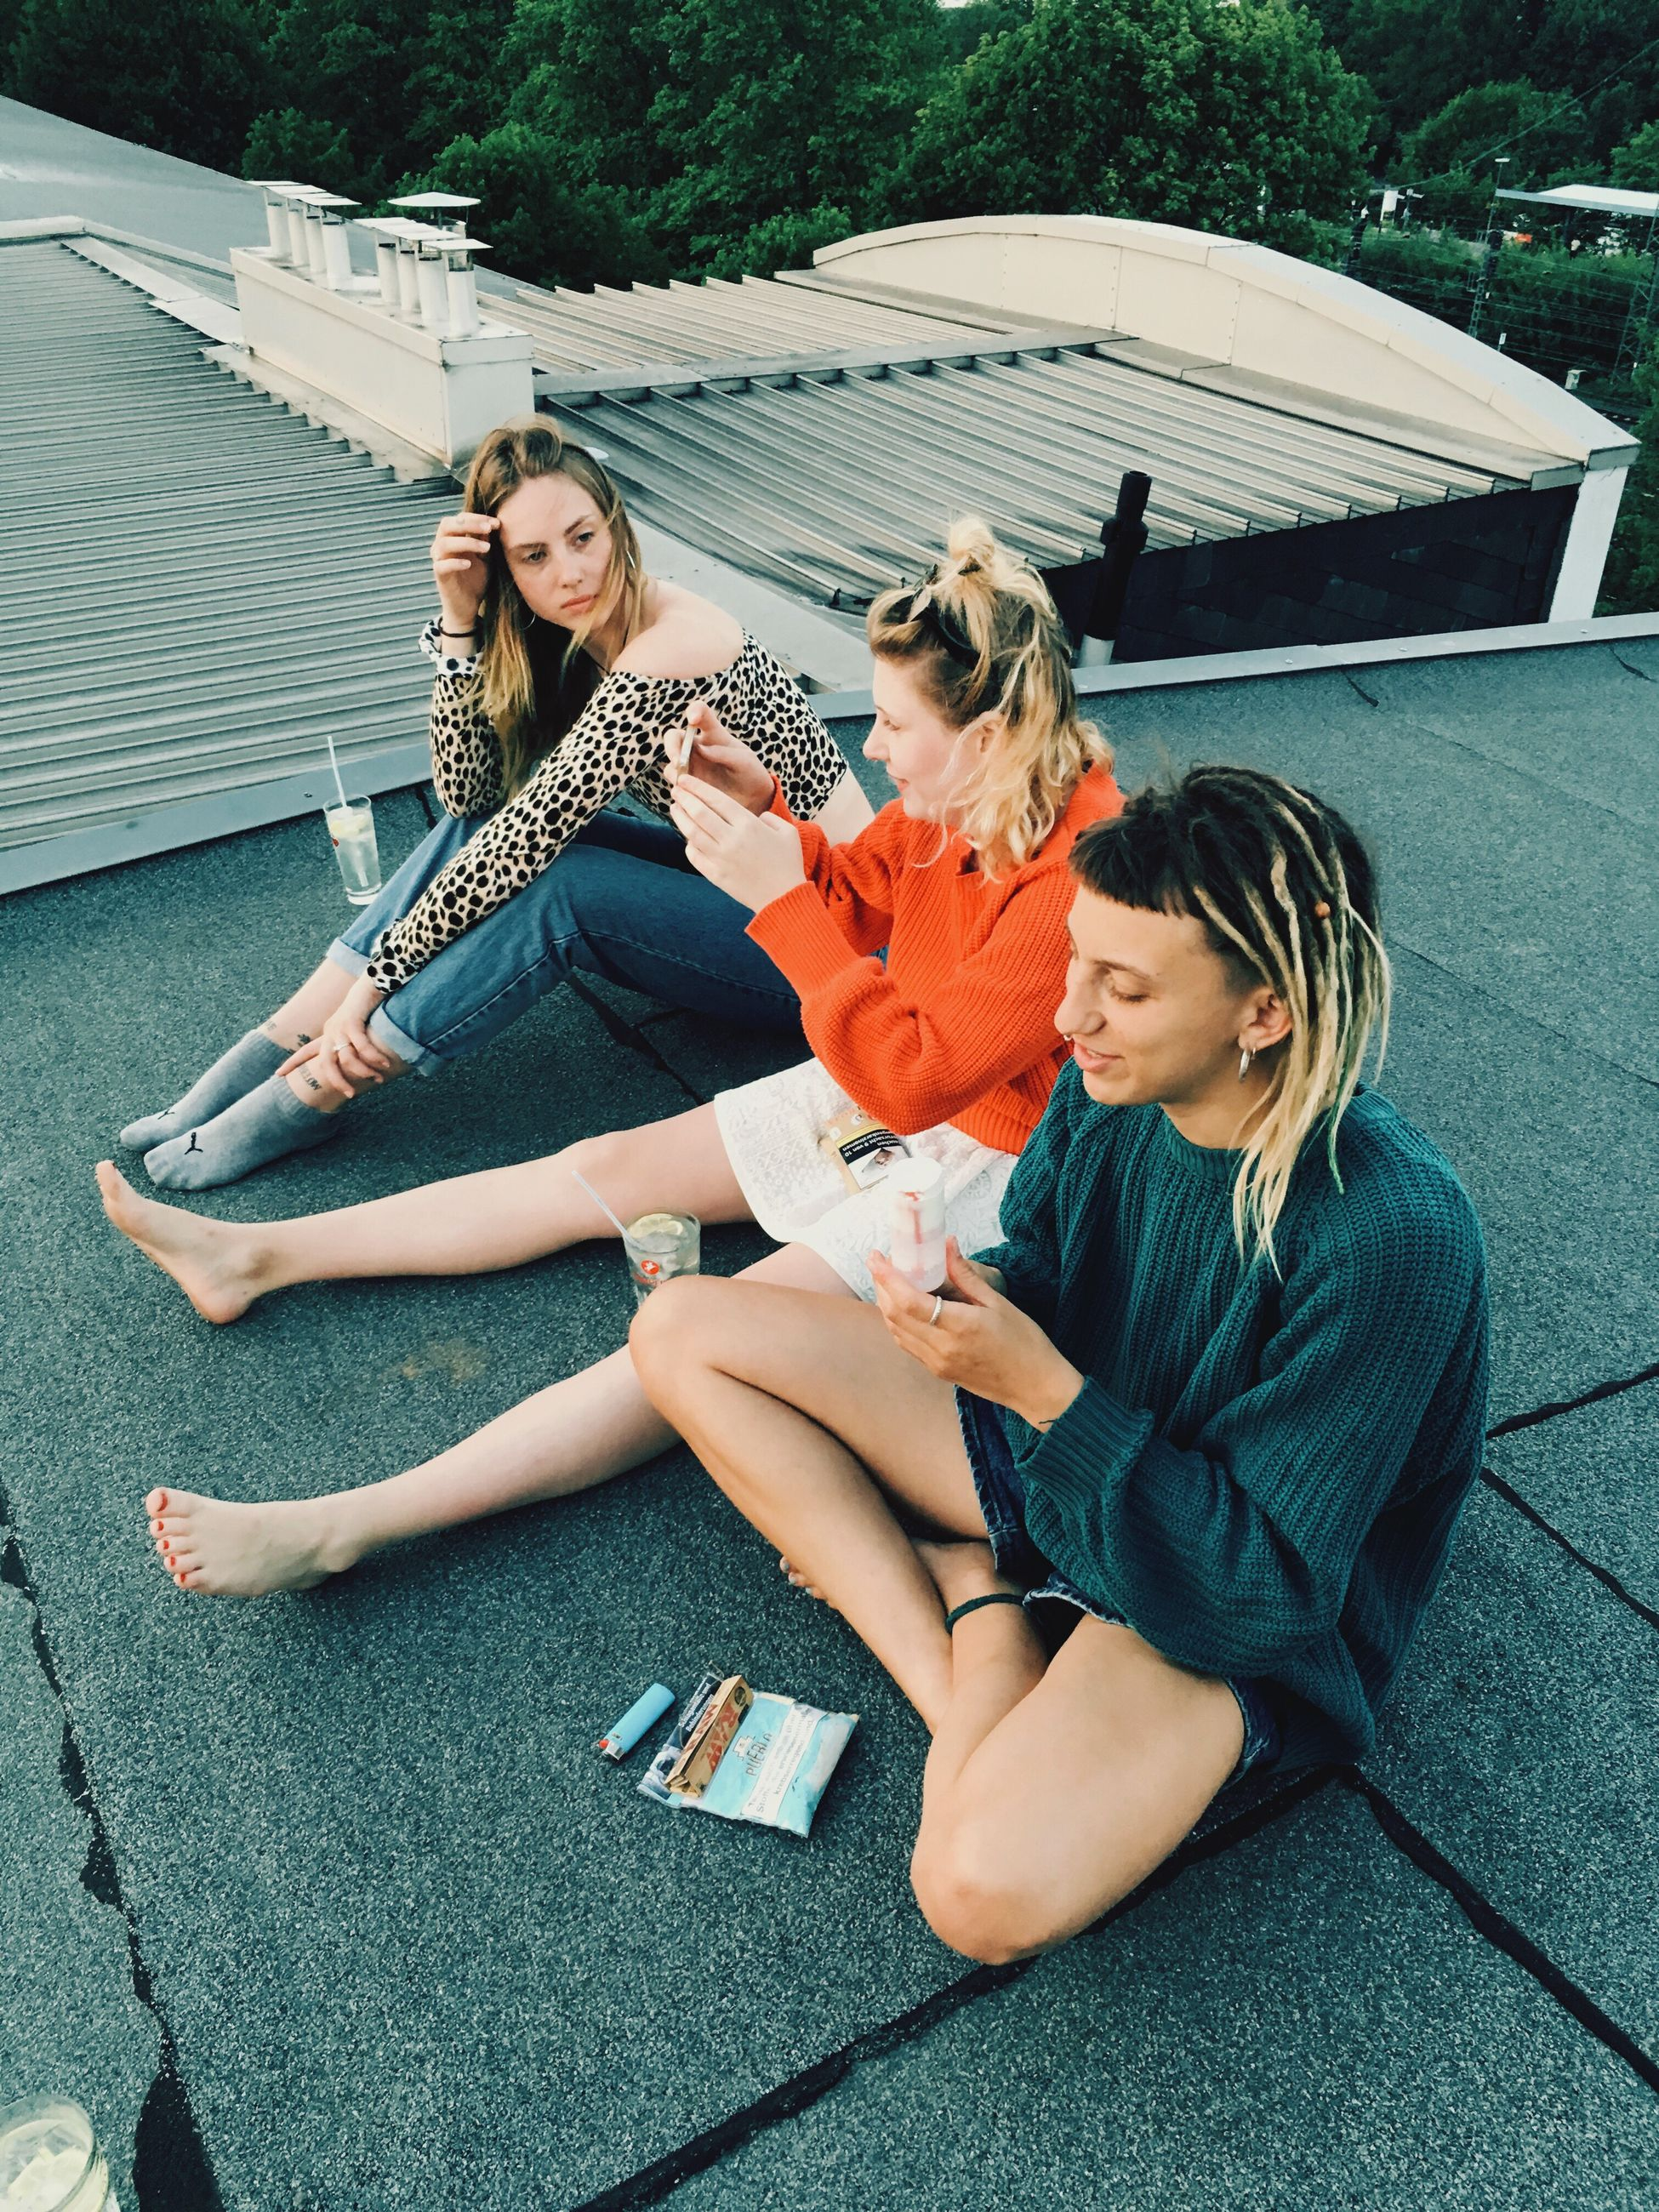 sitting, full length, young adult, young women, smiling, leisure activity, real people, group of people, casual clothing, women, happiness, lifestyles, togetherness, front view, people, emotion, friendship, day, hair, hairstyle, outdoors, beautiful woman